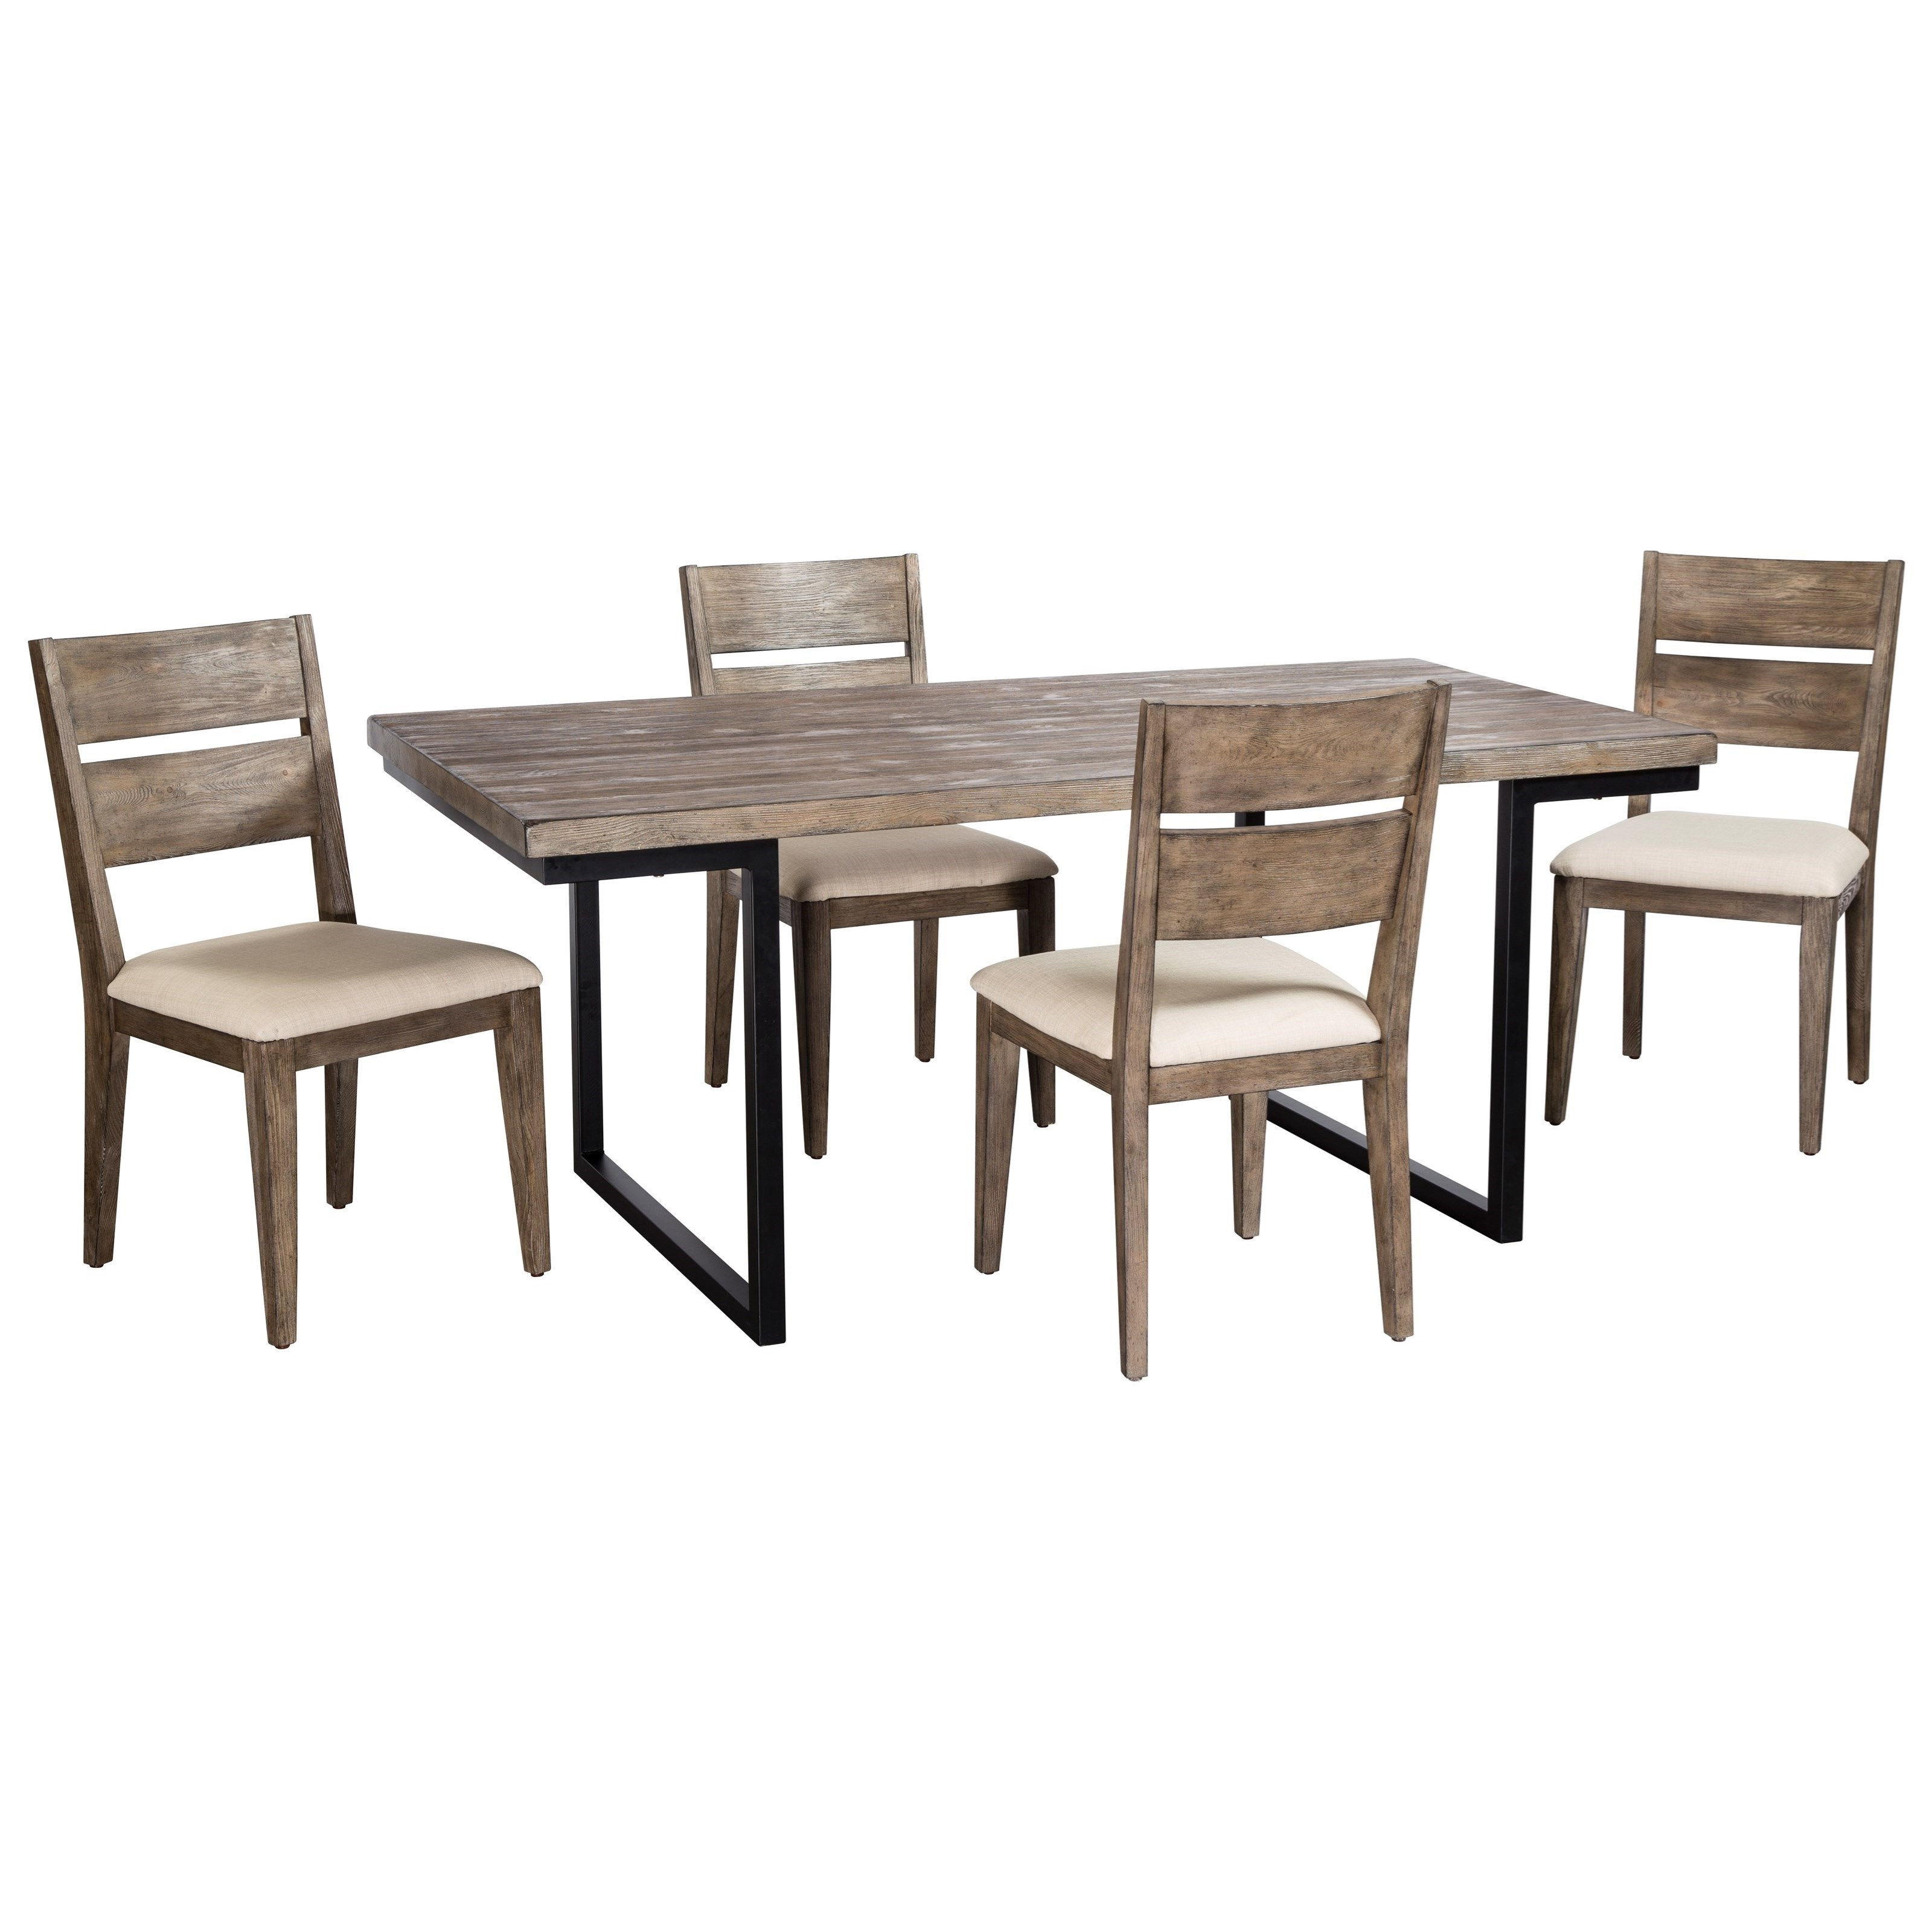 Exceptionnel Cresent Fine Furniture West End5 Piece Table And Chair Set ...